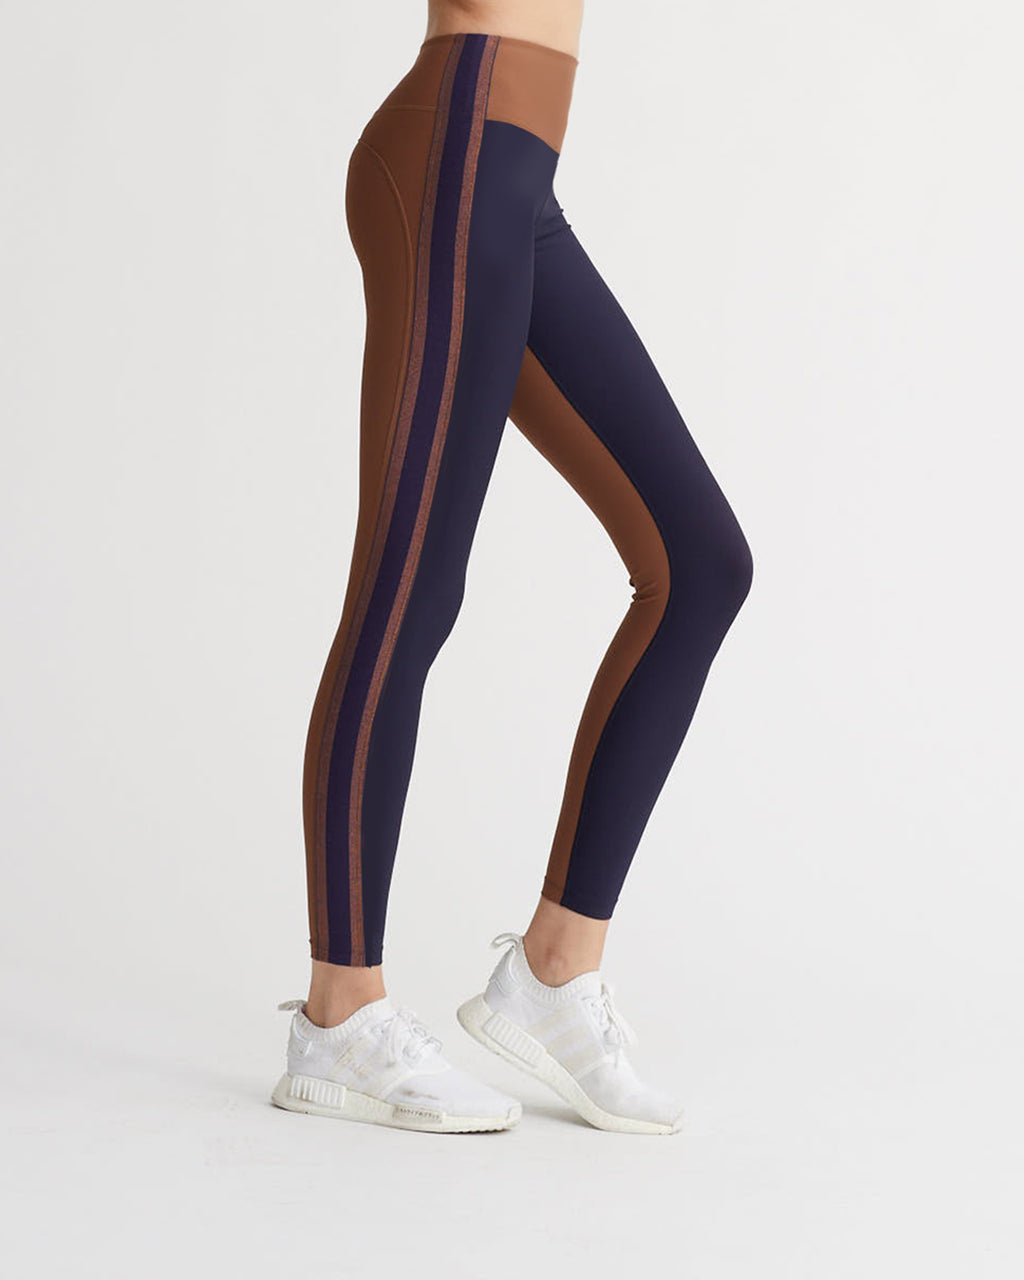 KERWIN LEGGINGS NAVY & COCOA COMBO